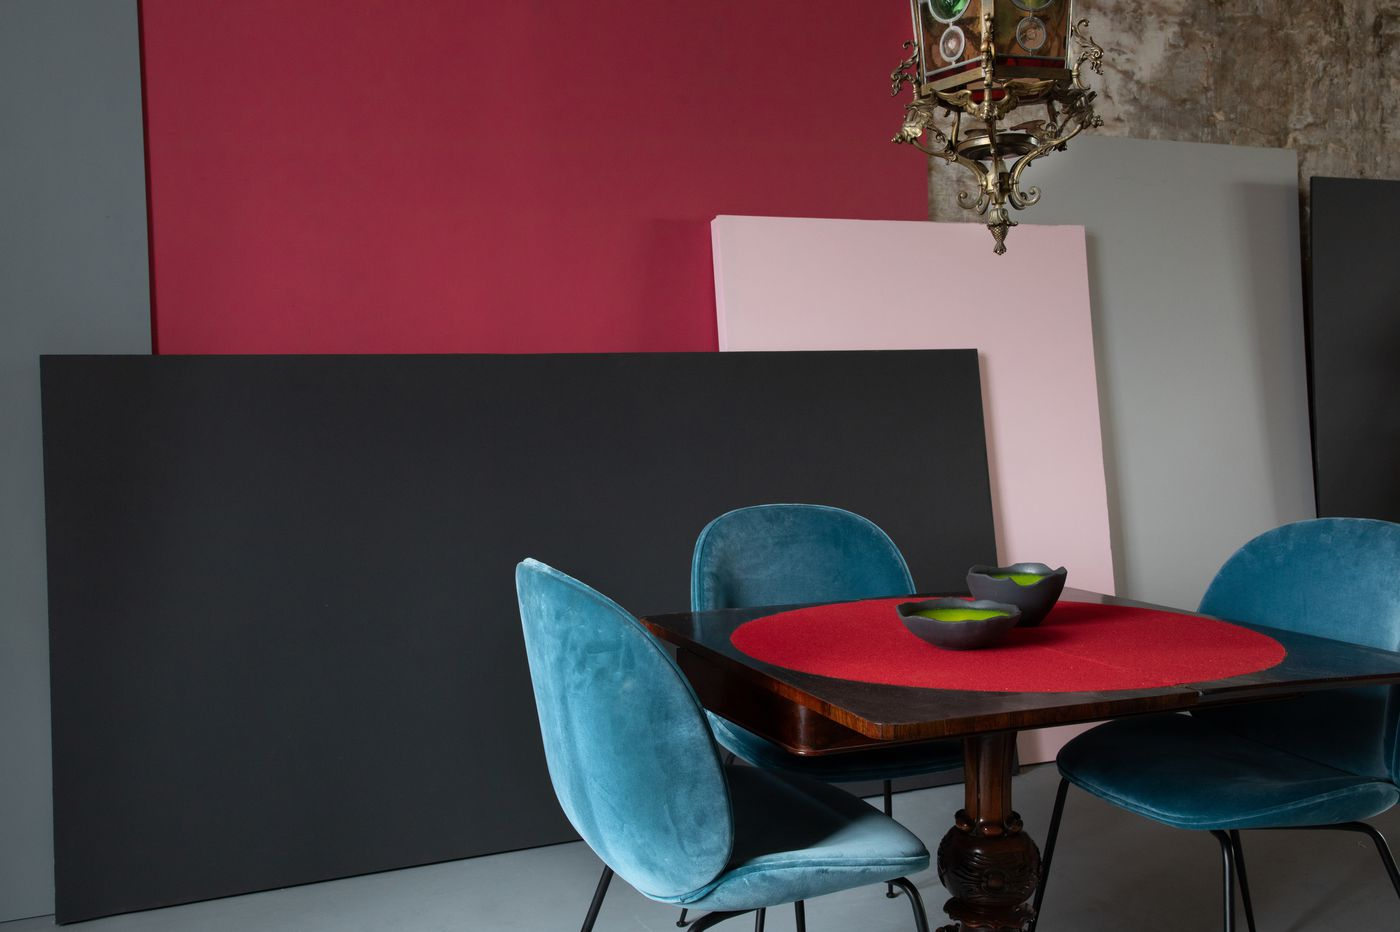 Paint companies' fix for overwhelmed customers: Fewer colors